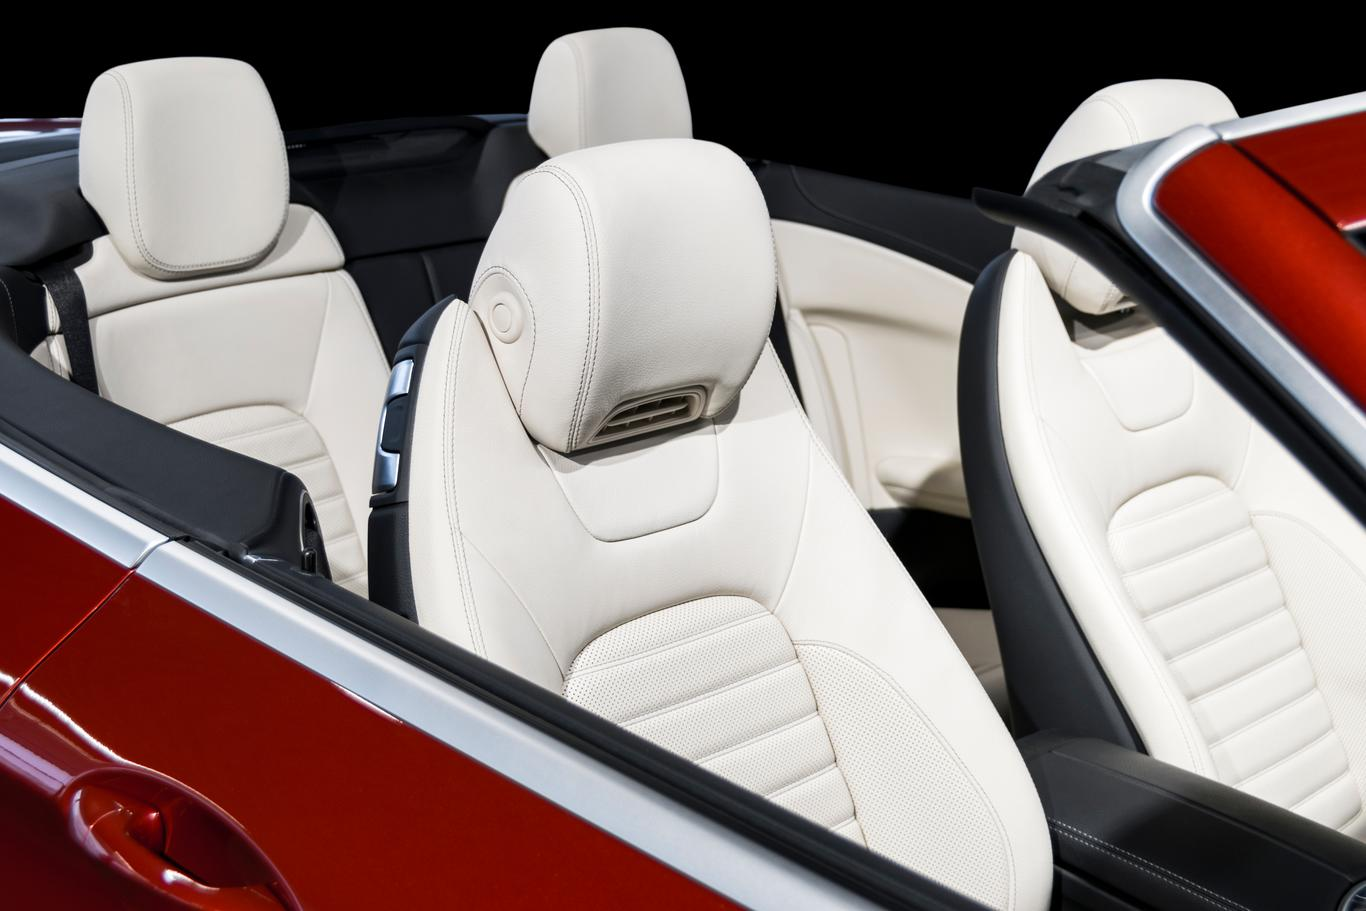 Comfortable white leather seats